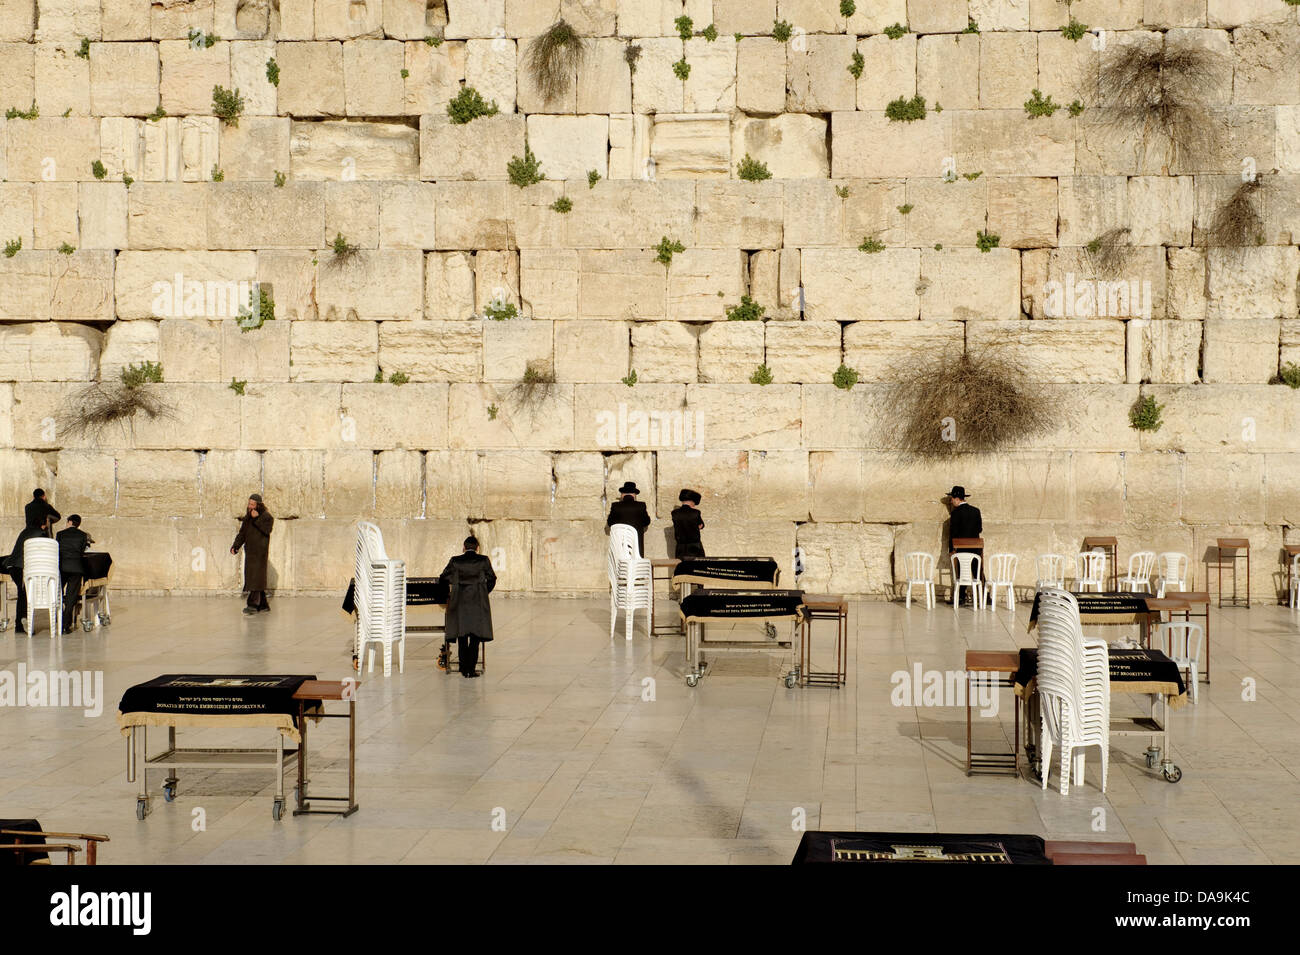 Old Town, Israel, Jerusalem, Wailing Wall, Middle East, Near East, Jew, Jewish, religion - Stock Image